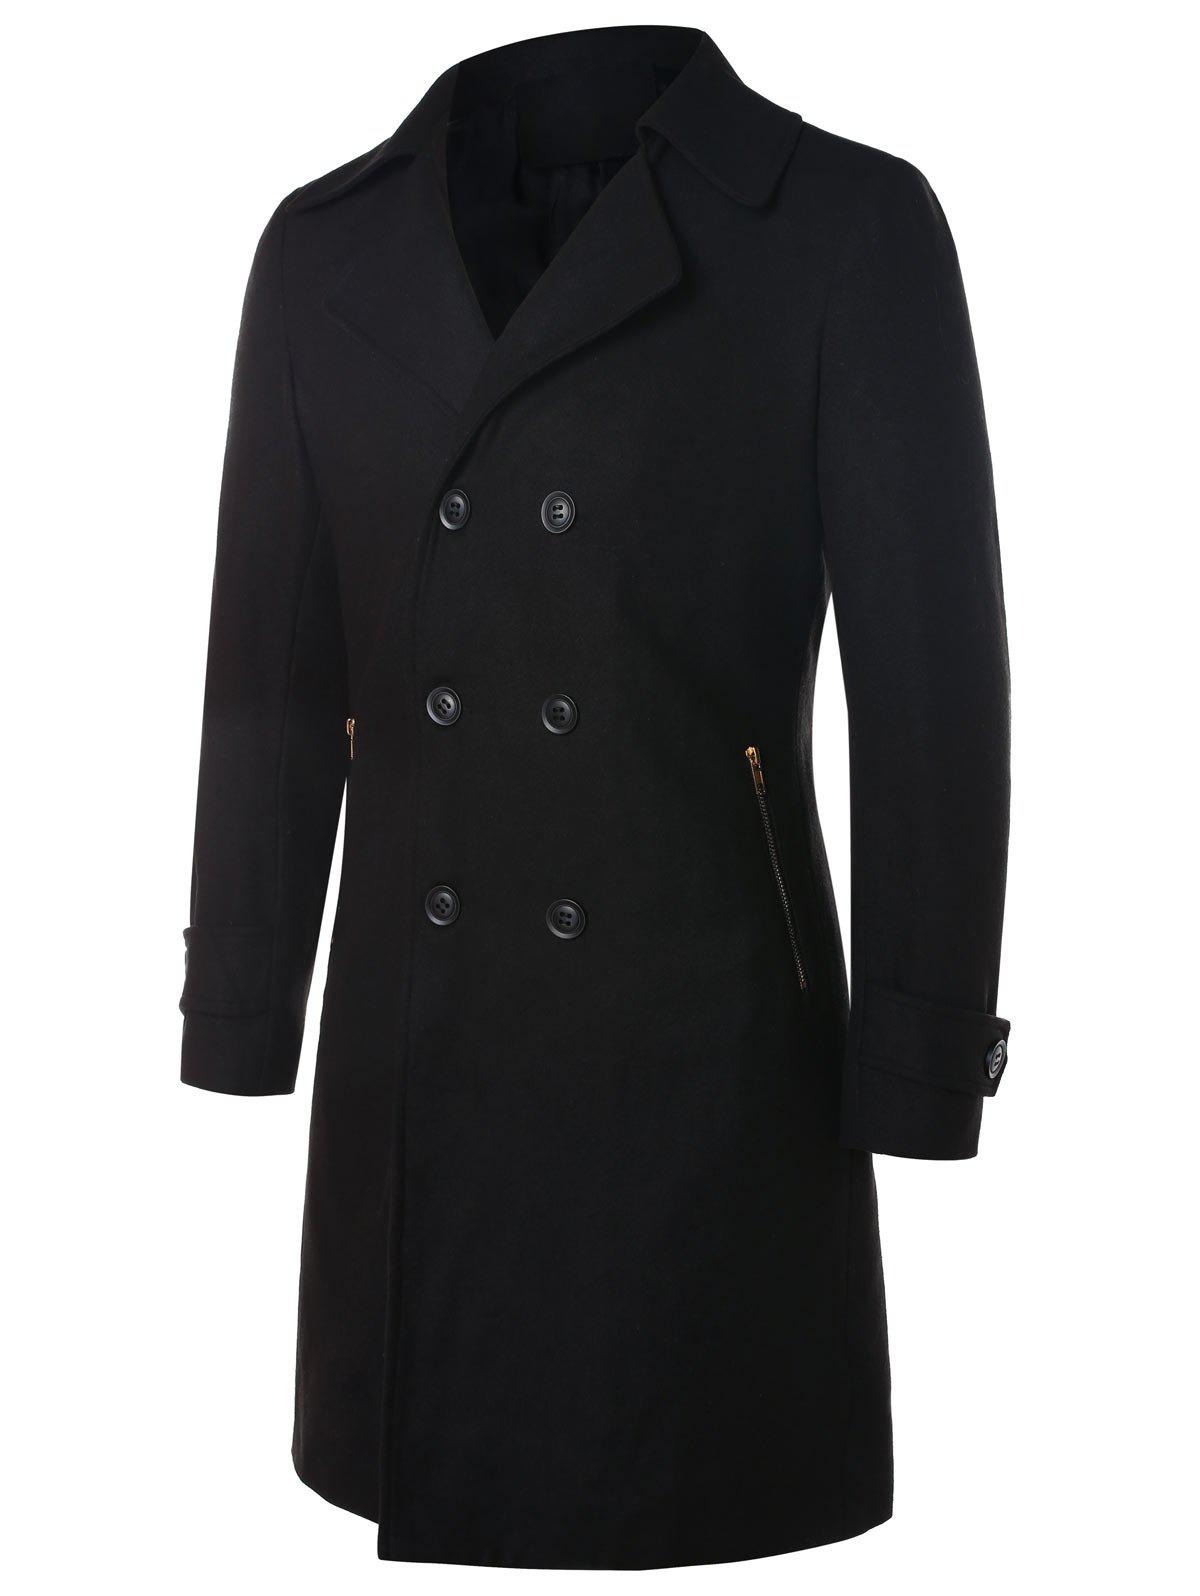 Manteau Long à Double Boutonnage à Col Revers - Noir 2XL